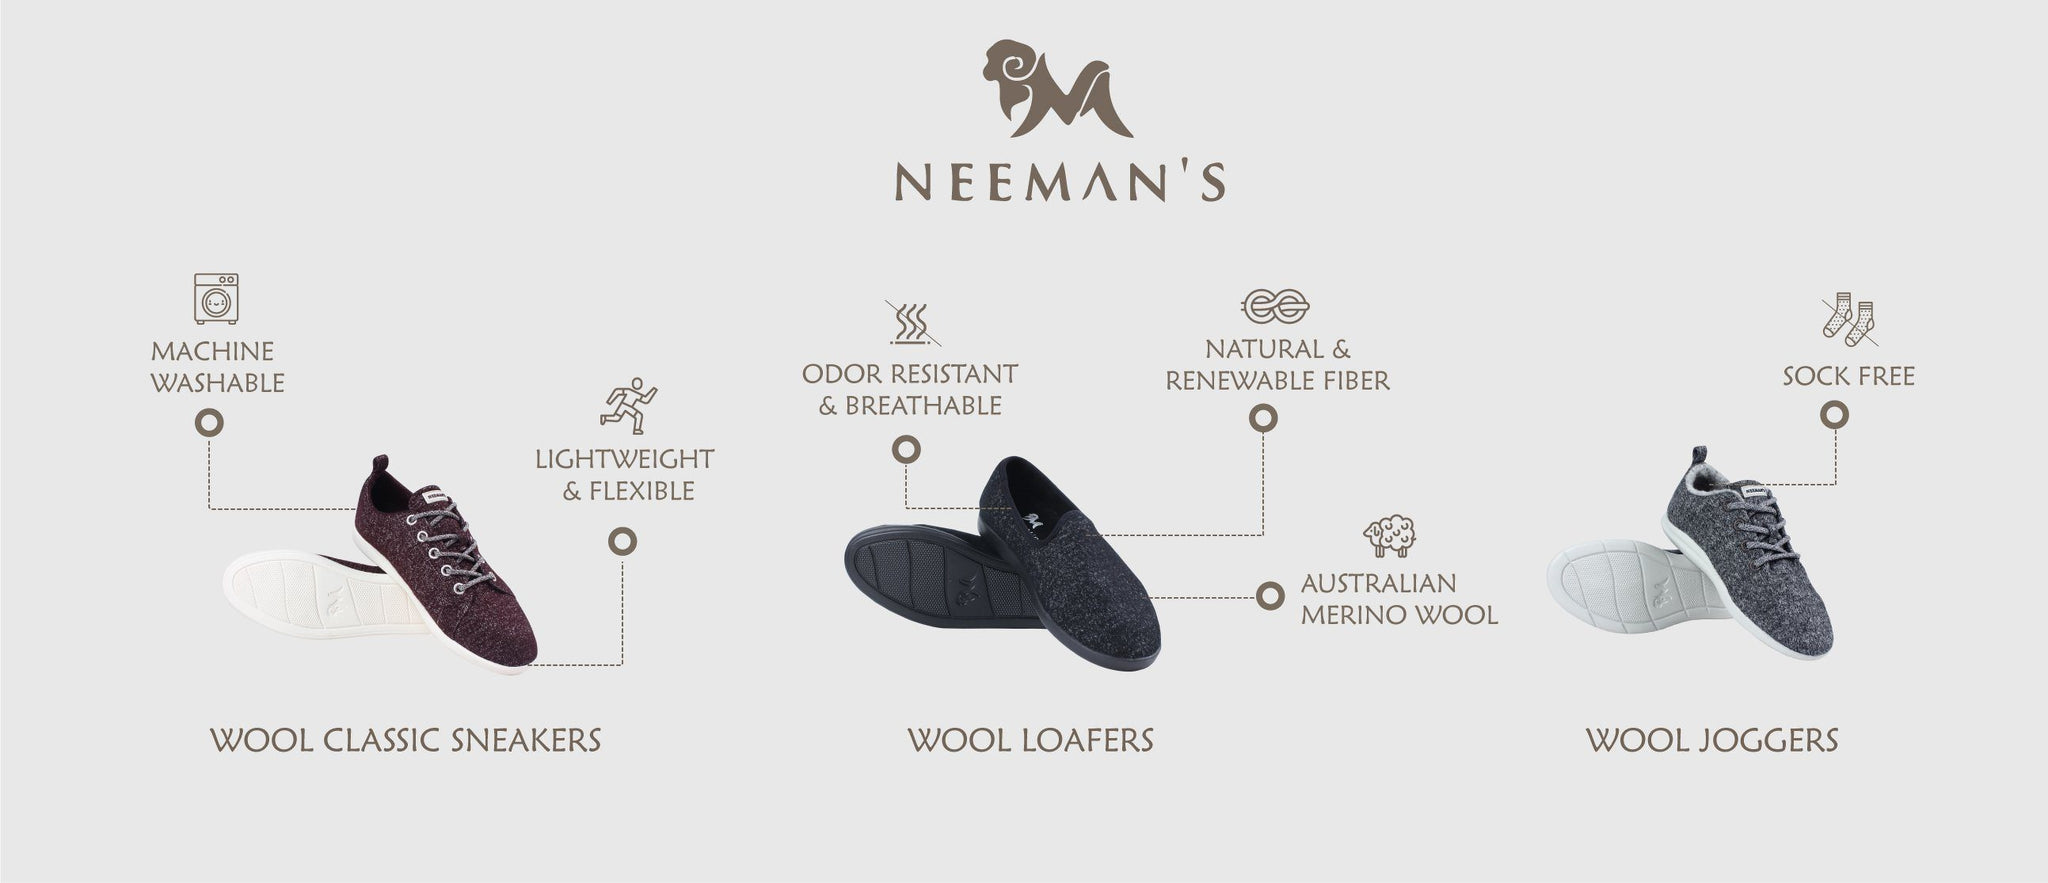 Features of Neeman's Merino Wool Shoes